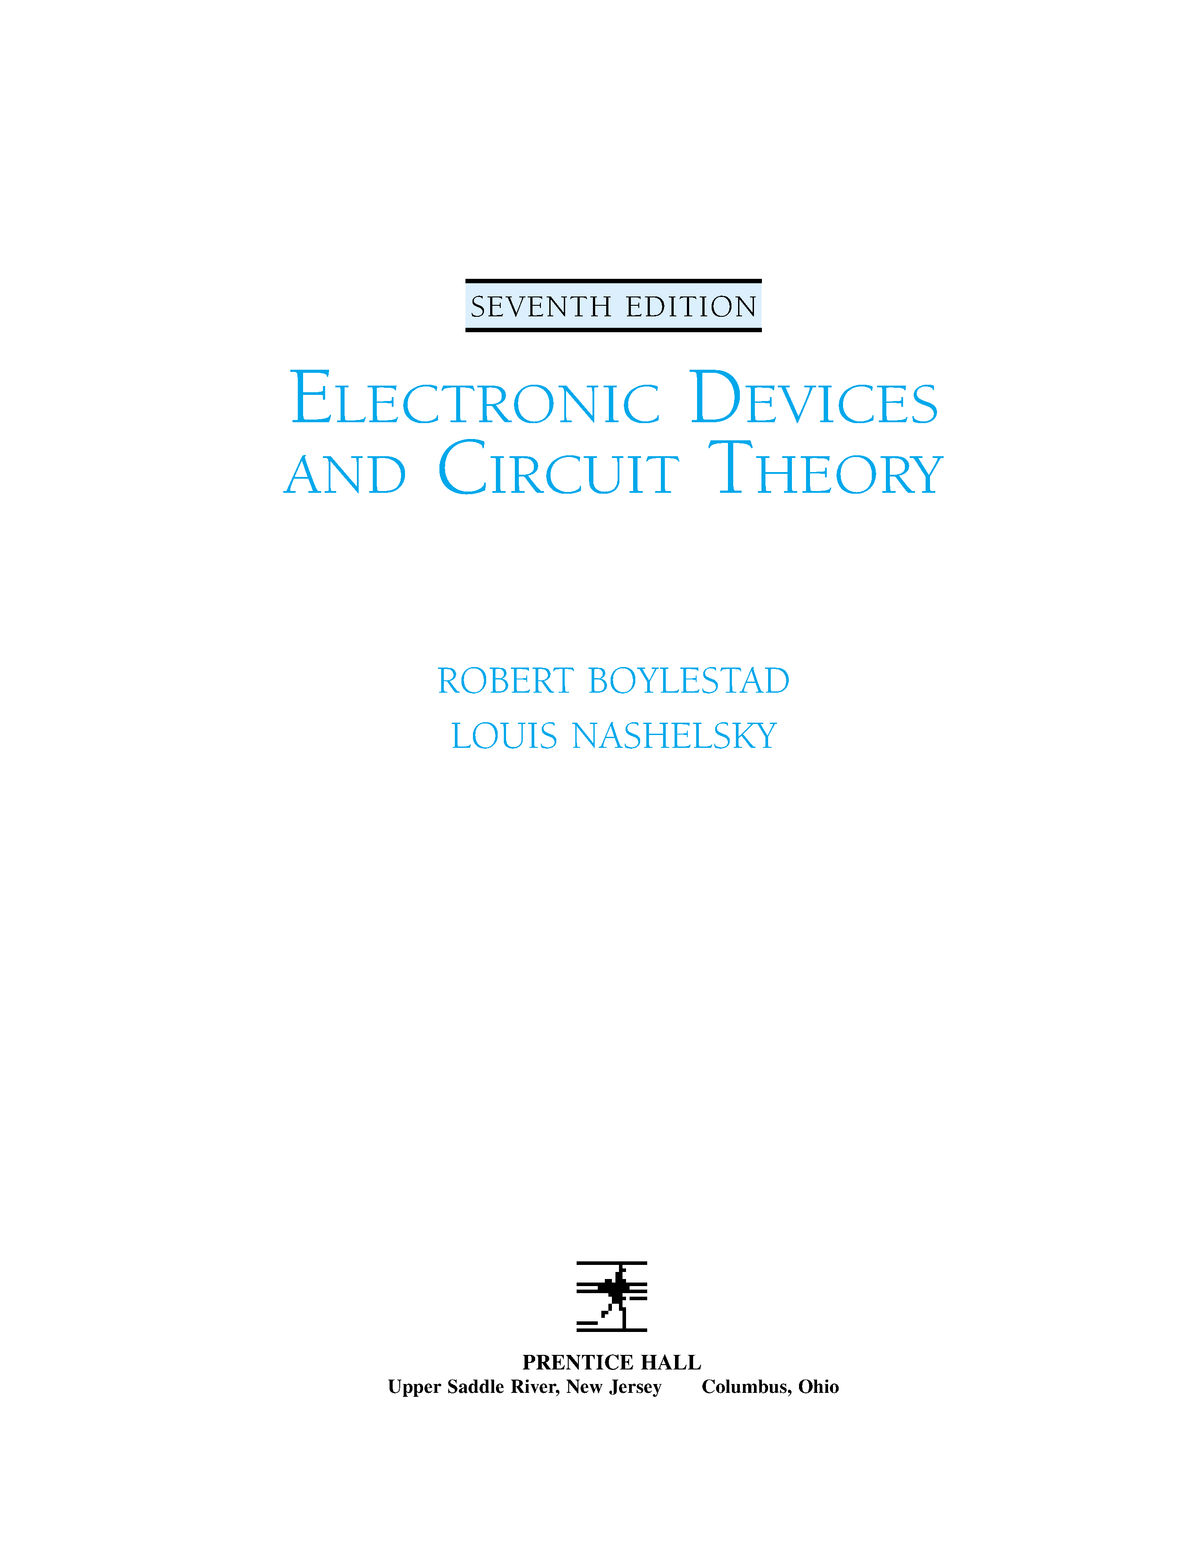 Electronic Devices and Circuit Theory Robert Boylestad Louis